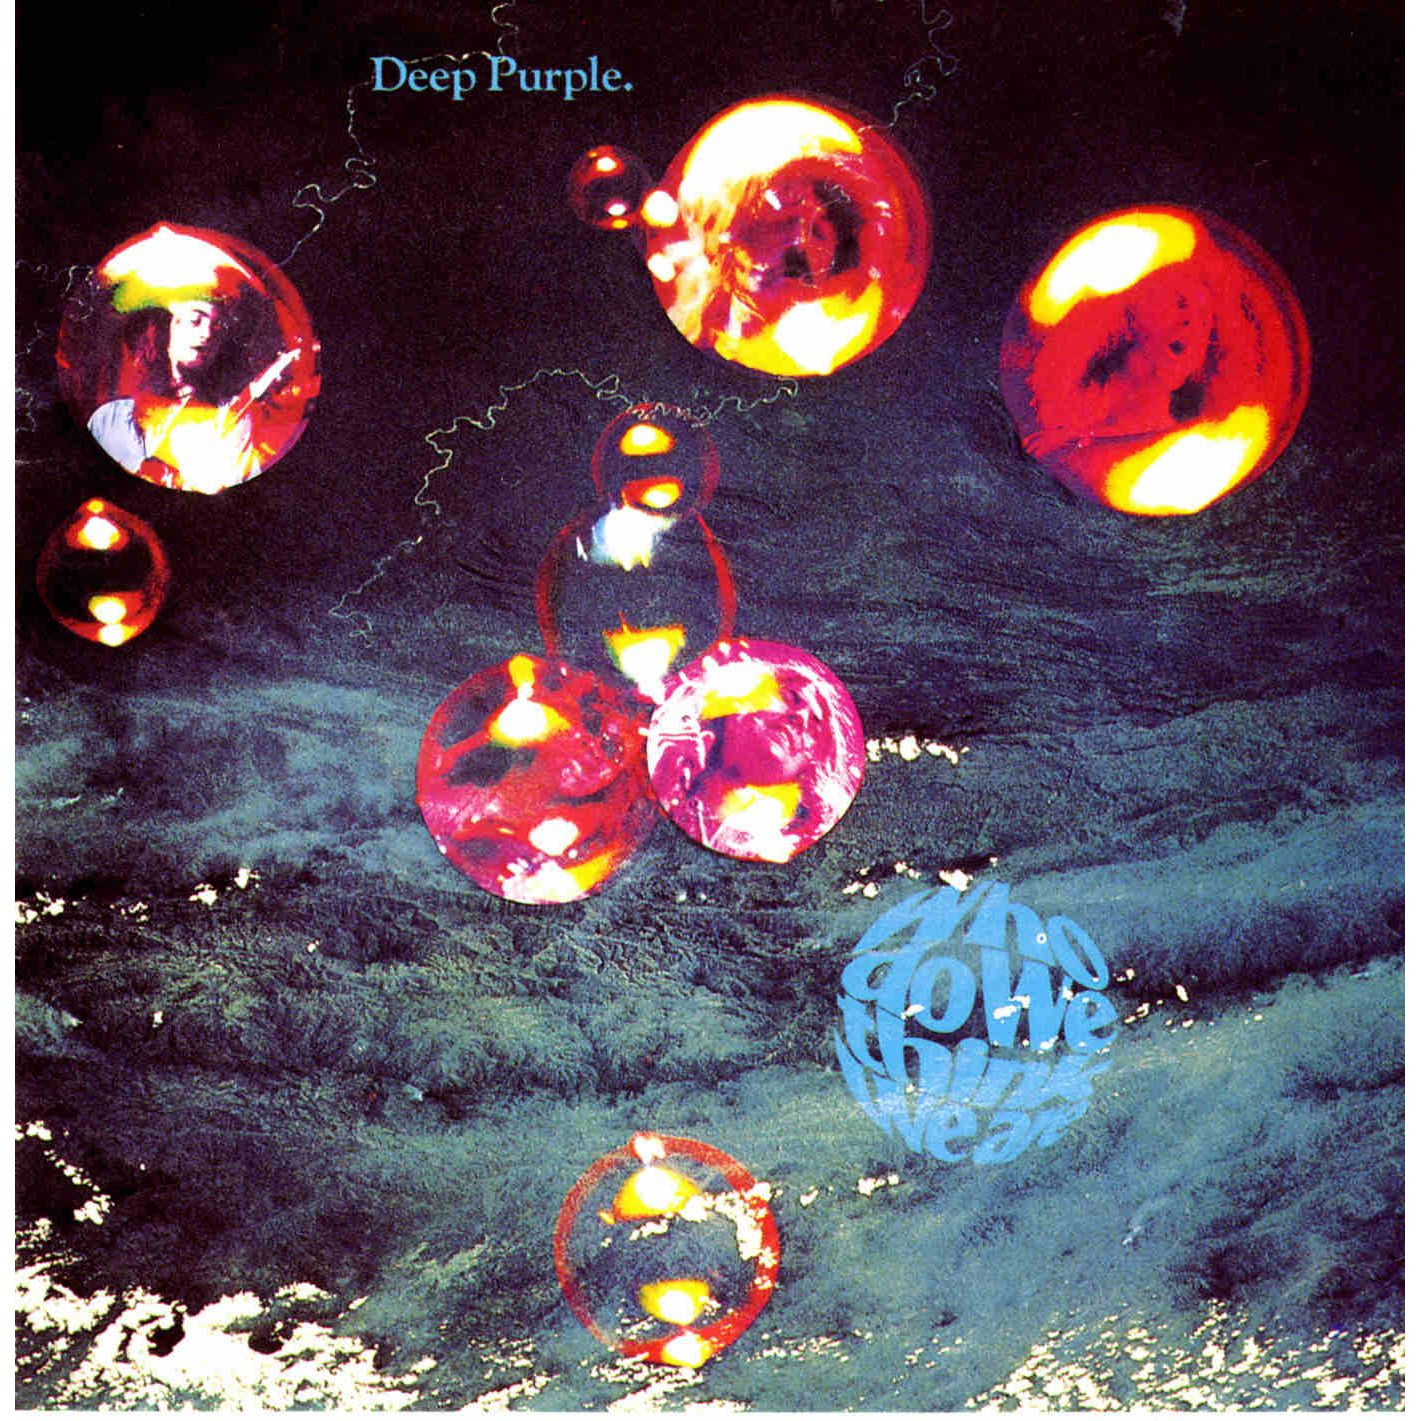 Deep Purple - Who Do We Think We Are (180 Gram Audiophile Vinyl)